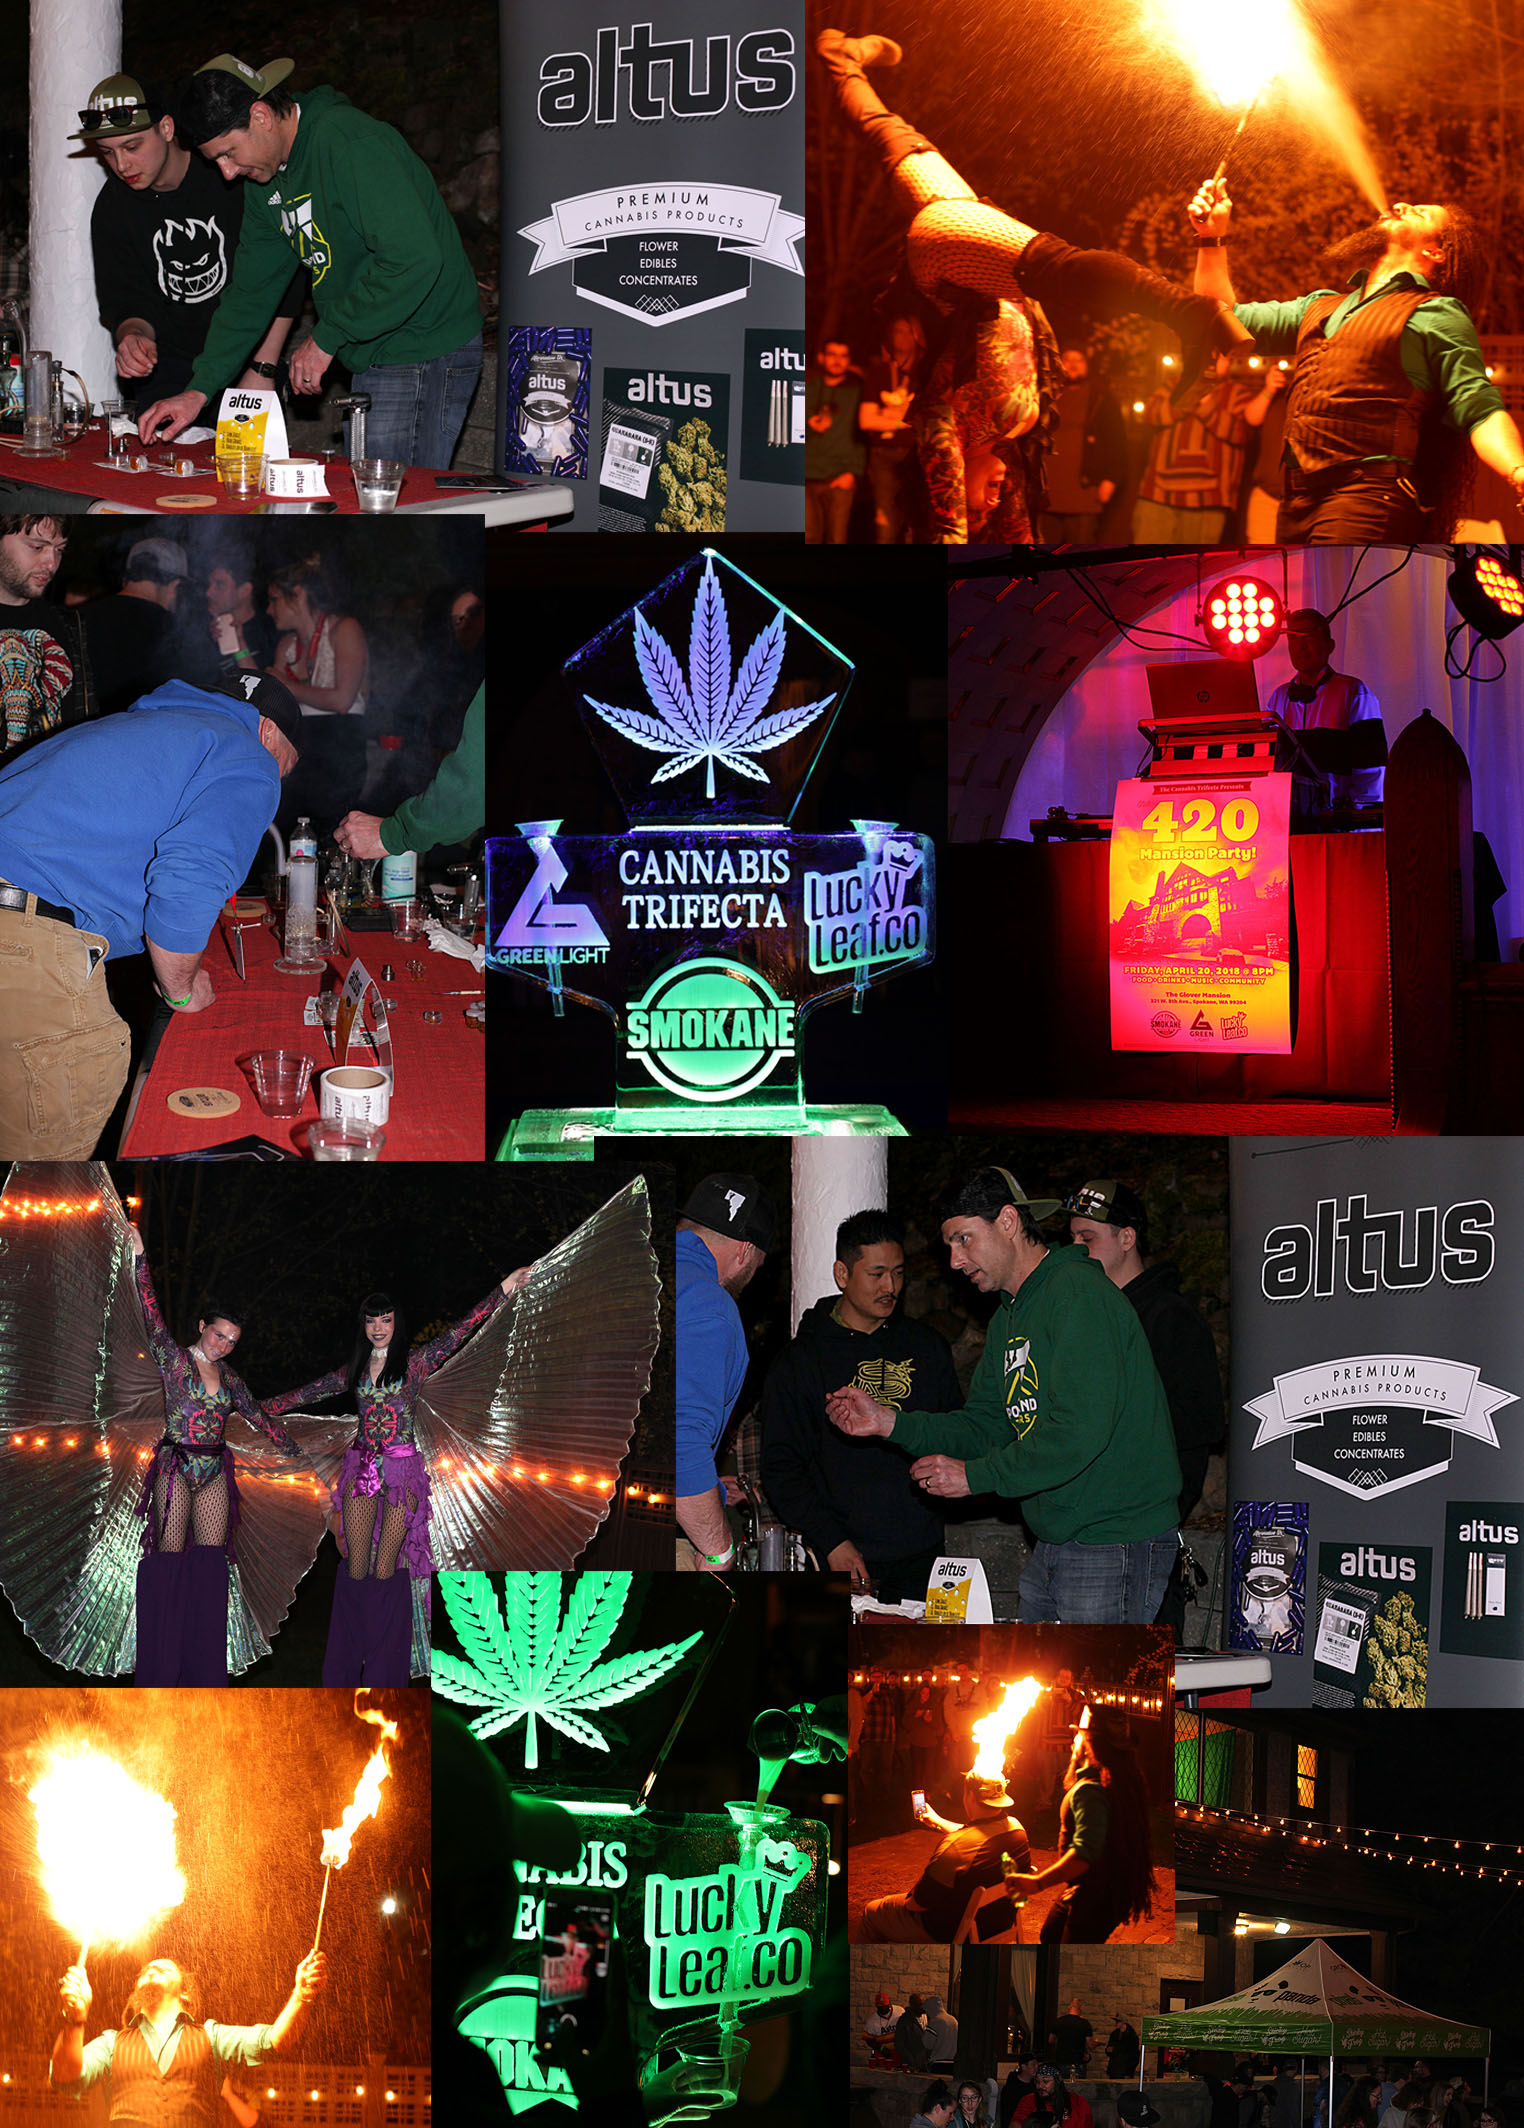 Altus hosting a dab bar at The 420 Mansion Party for the Spokane Cannabis Industry hosted by Smokane, Green Light, and Lucky Leaf Co.